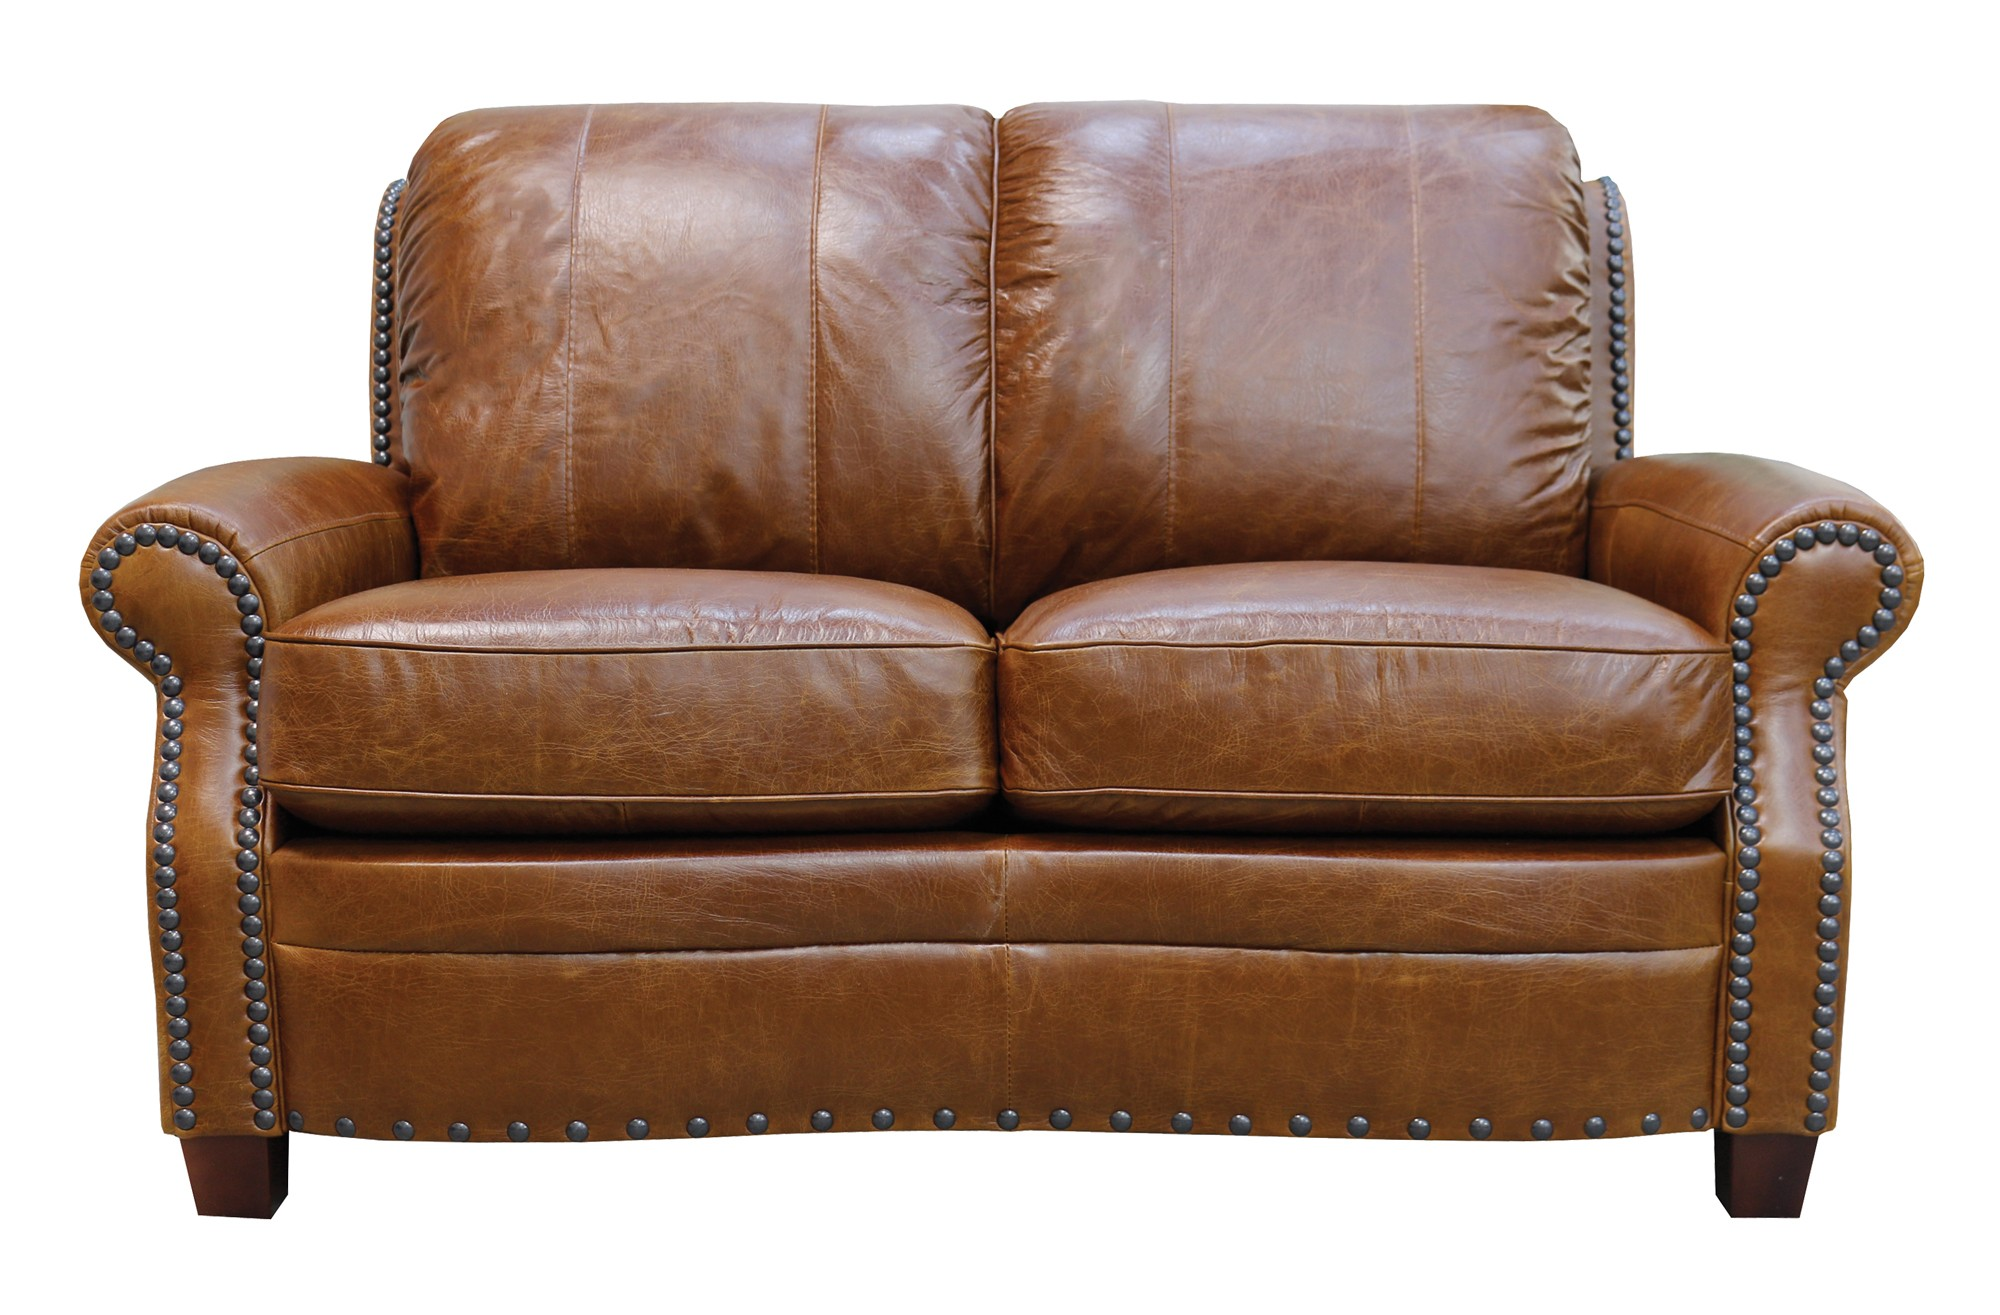 Ashton Group Luke Leather Furniture